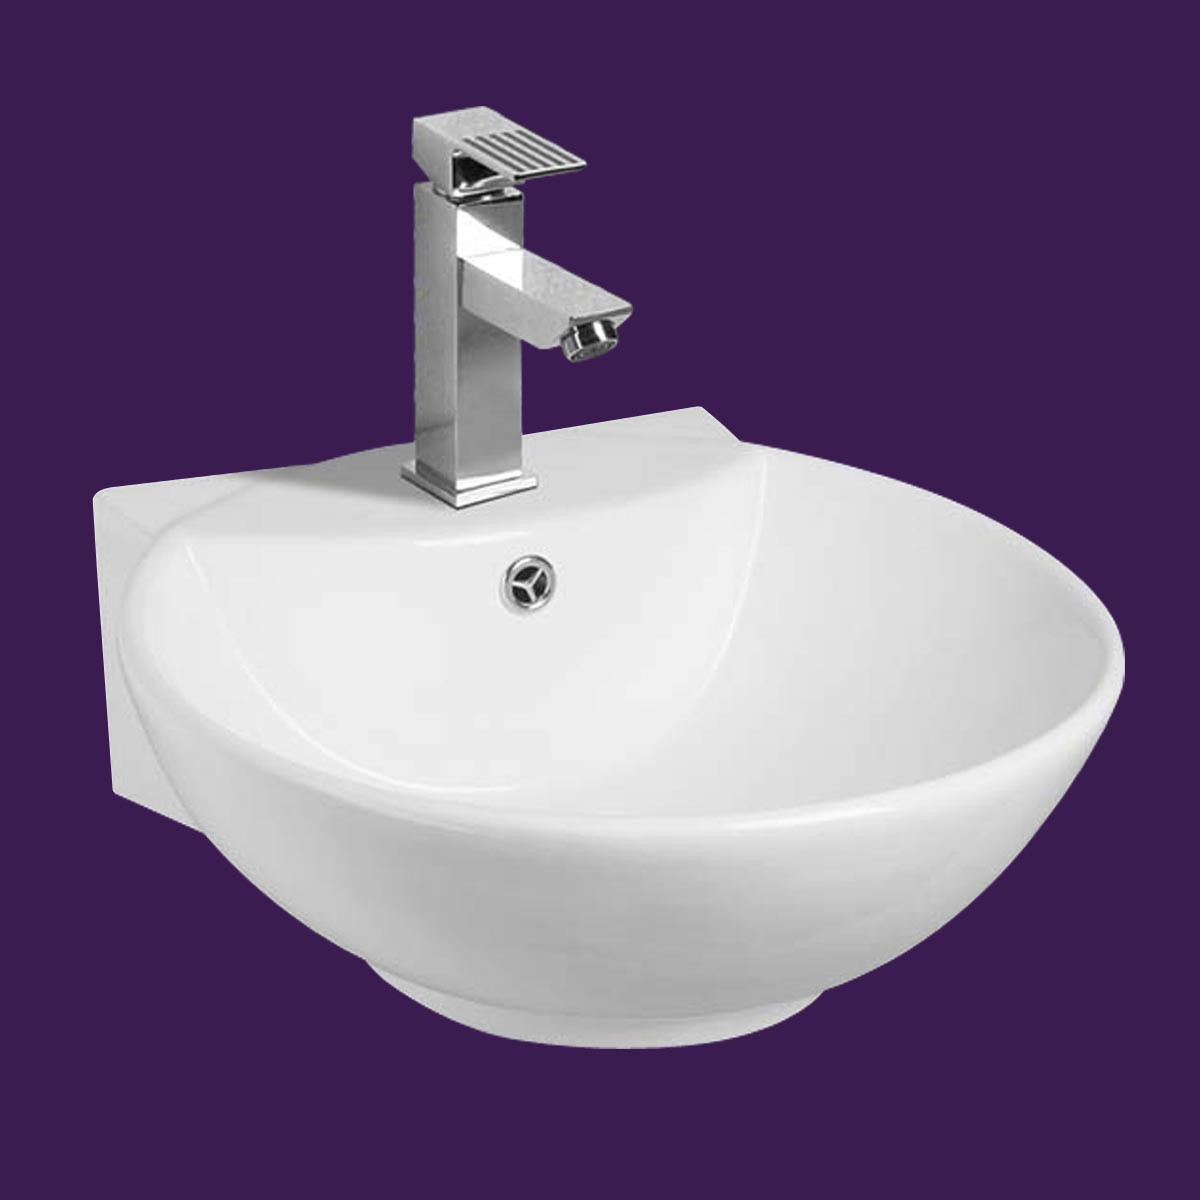 white wall mount small vessel sink easy clean and install. Black Bedroom Furniture Sets. Home Design Ideas